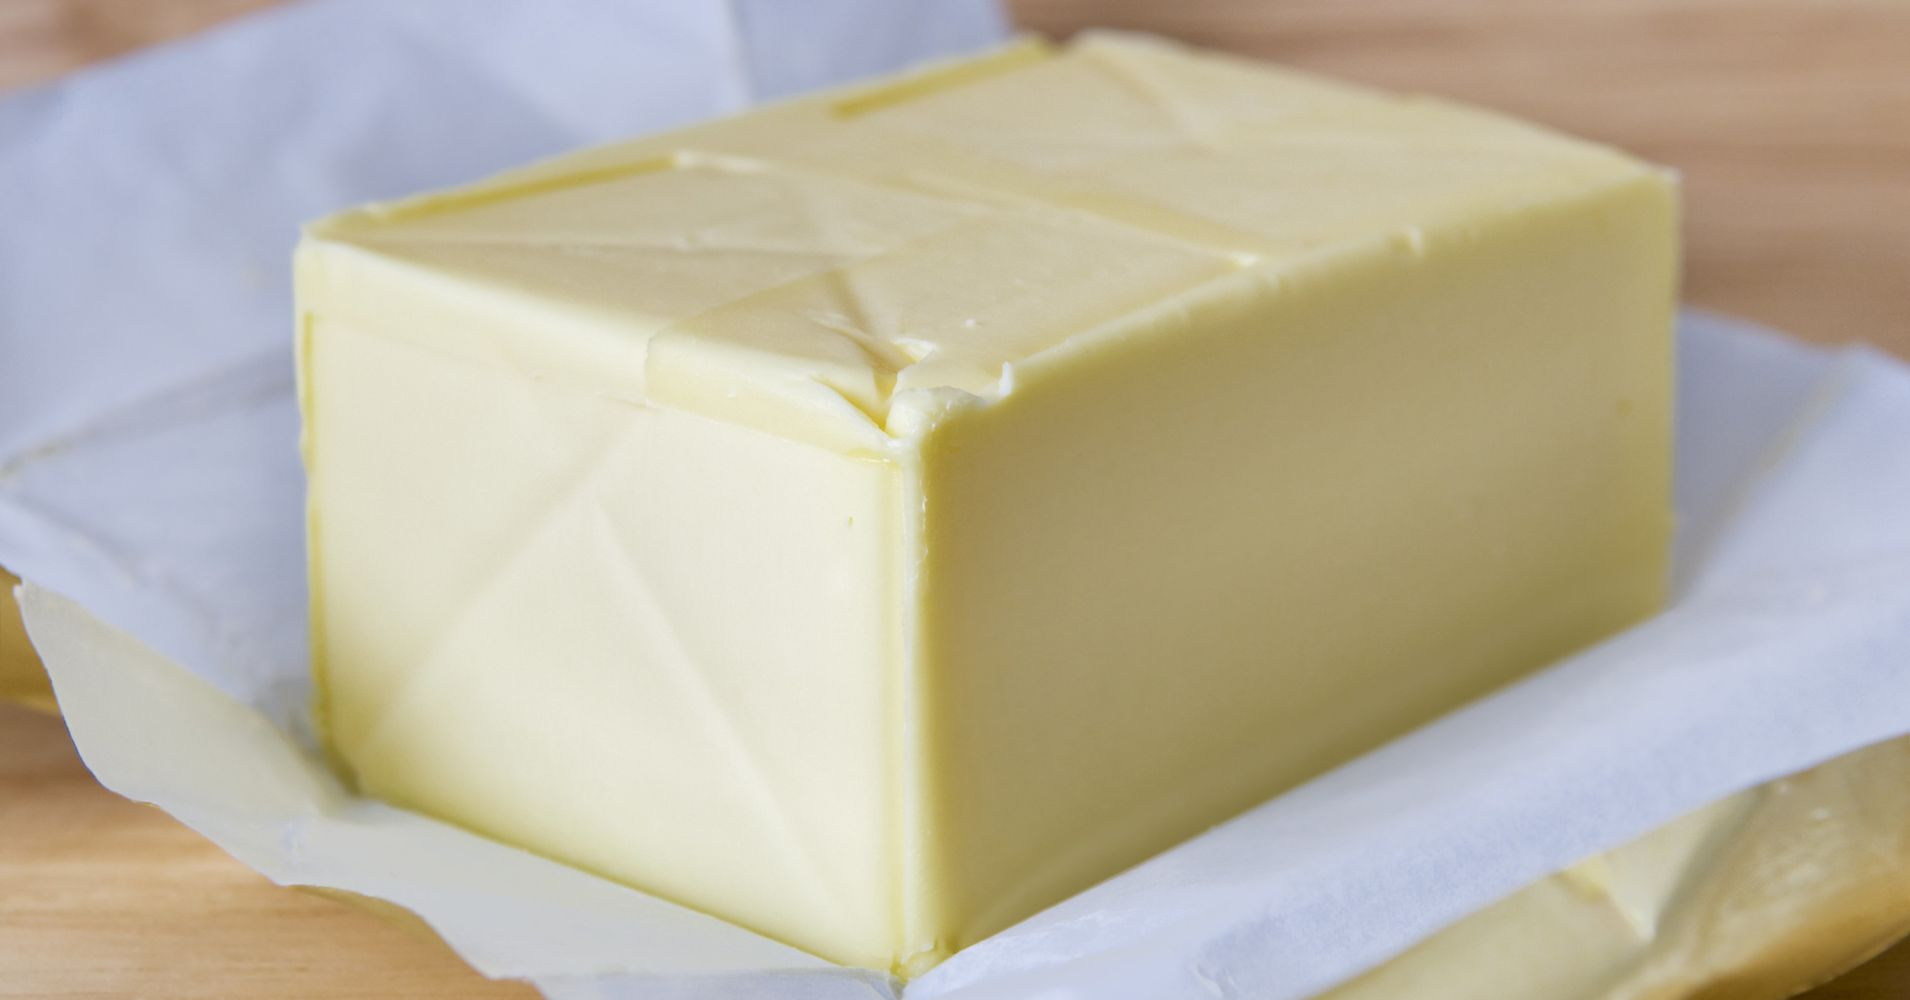 These 7 Butter Hacks Will Make Your Life Infinitely Better